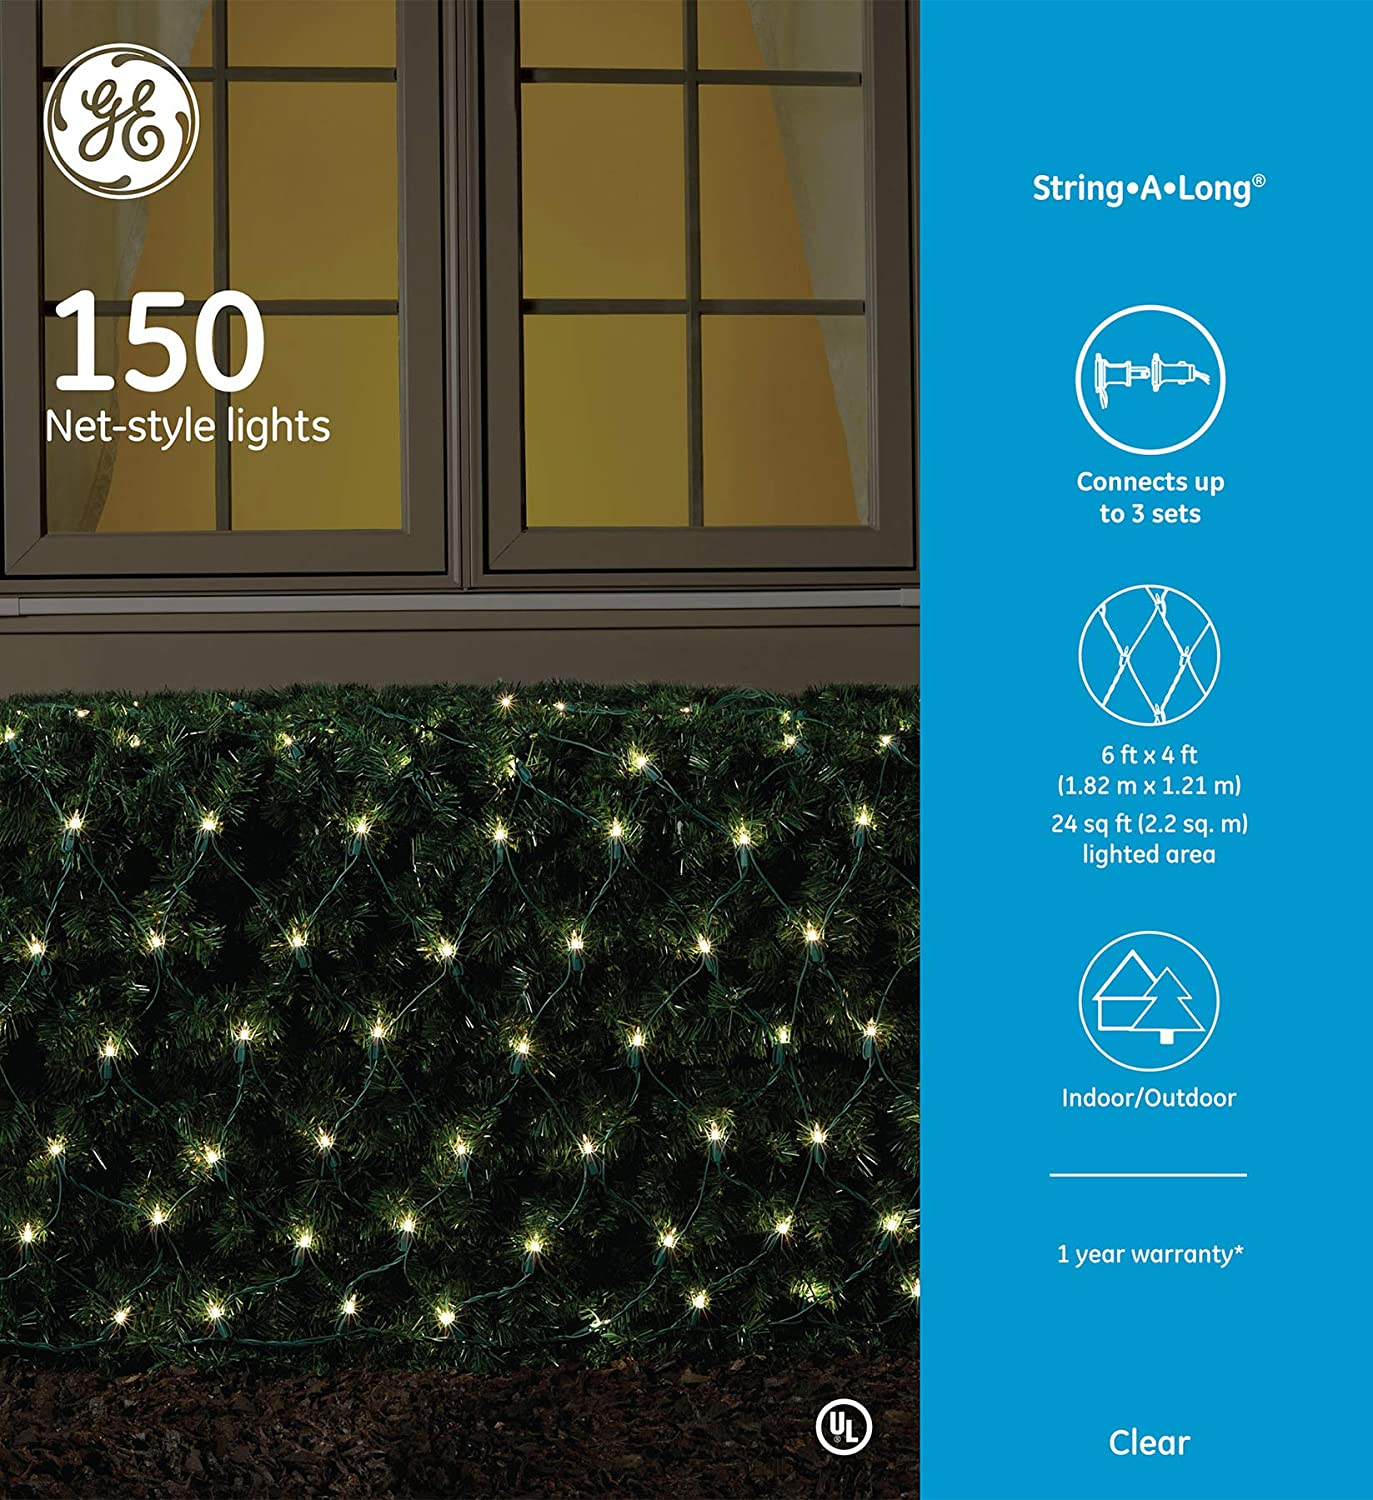 GE 150 Light Net-Style Holiday Light - Clear Lights, Green Wire - String-a-Long - Traditional lighting